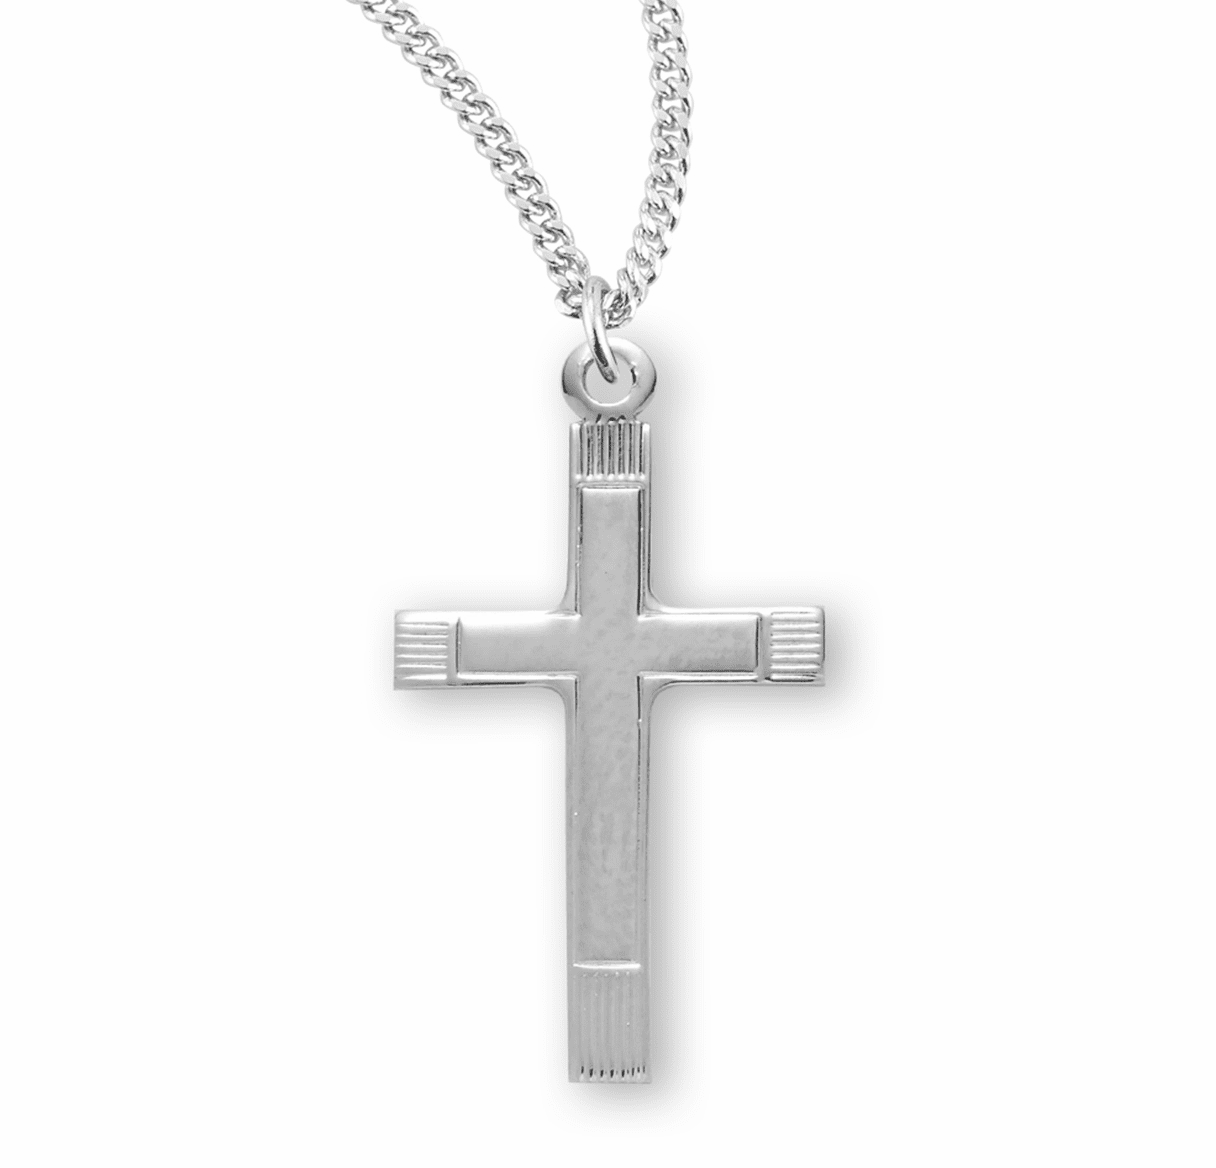 HMH Religious Small Fancy Sterling Silver Cross Necklace